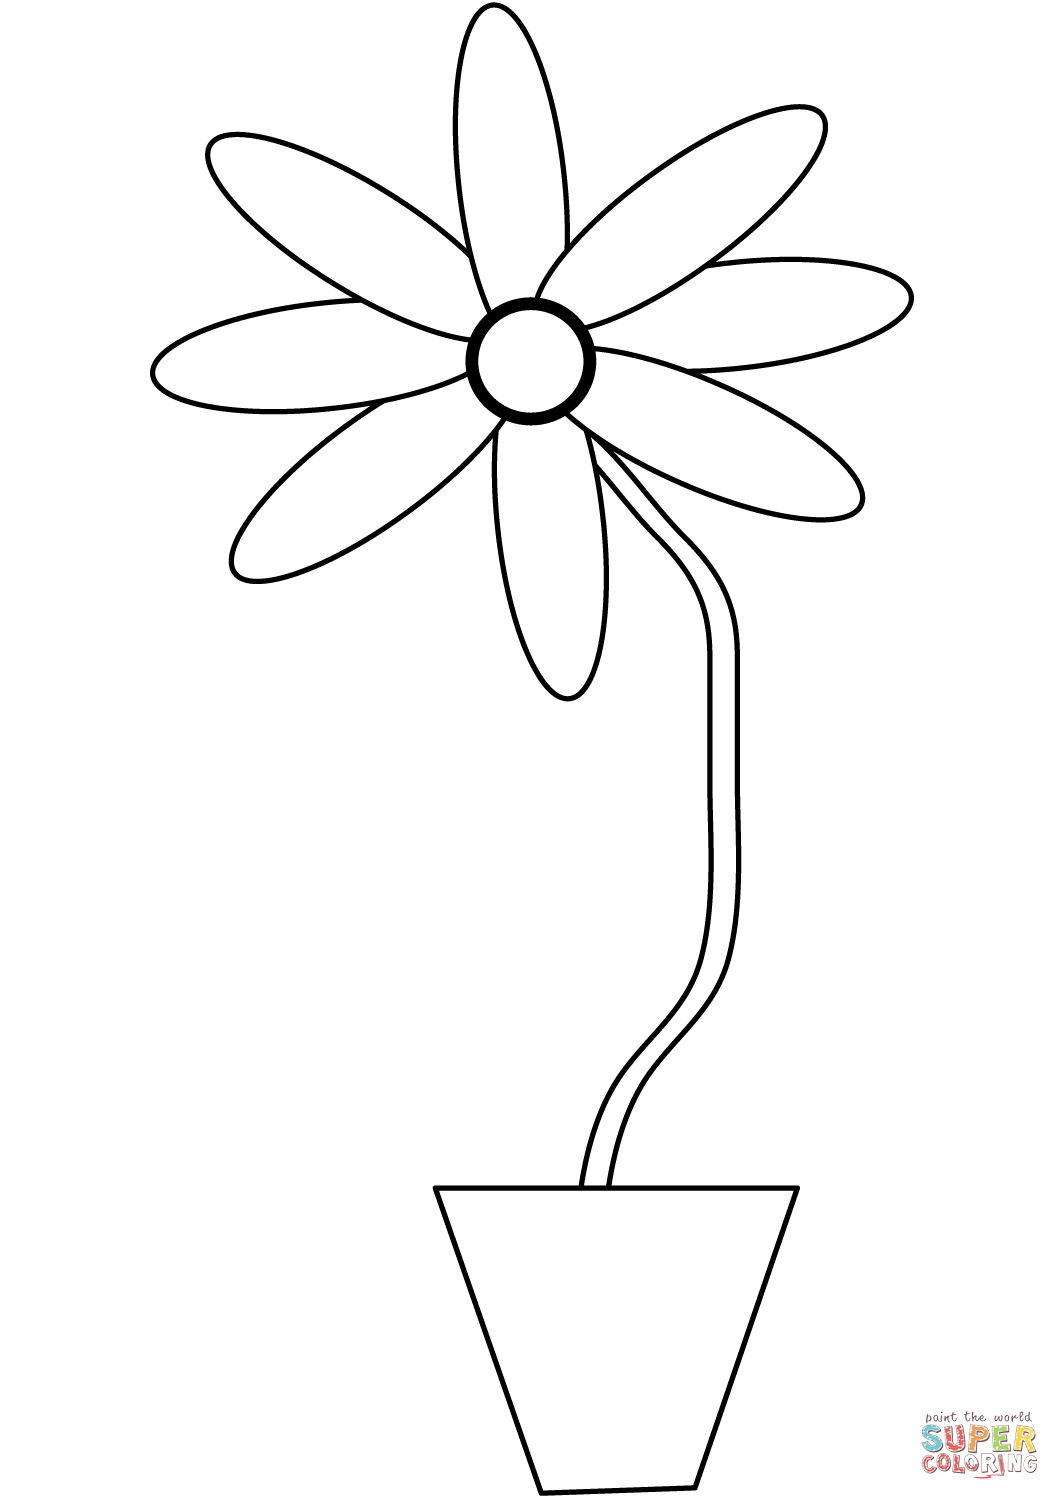 graphic about Flower Pot Printable named Free of charge Printable Flower Pot Coloring Webpage - Bouquets Balanced